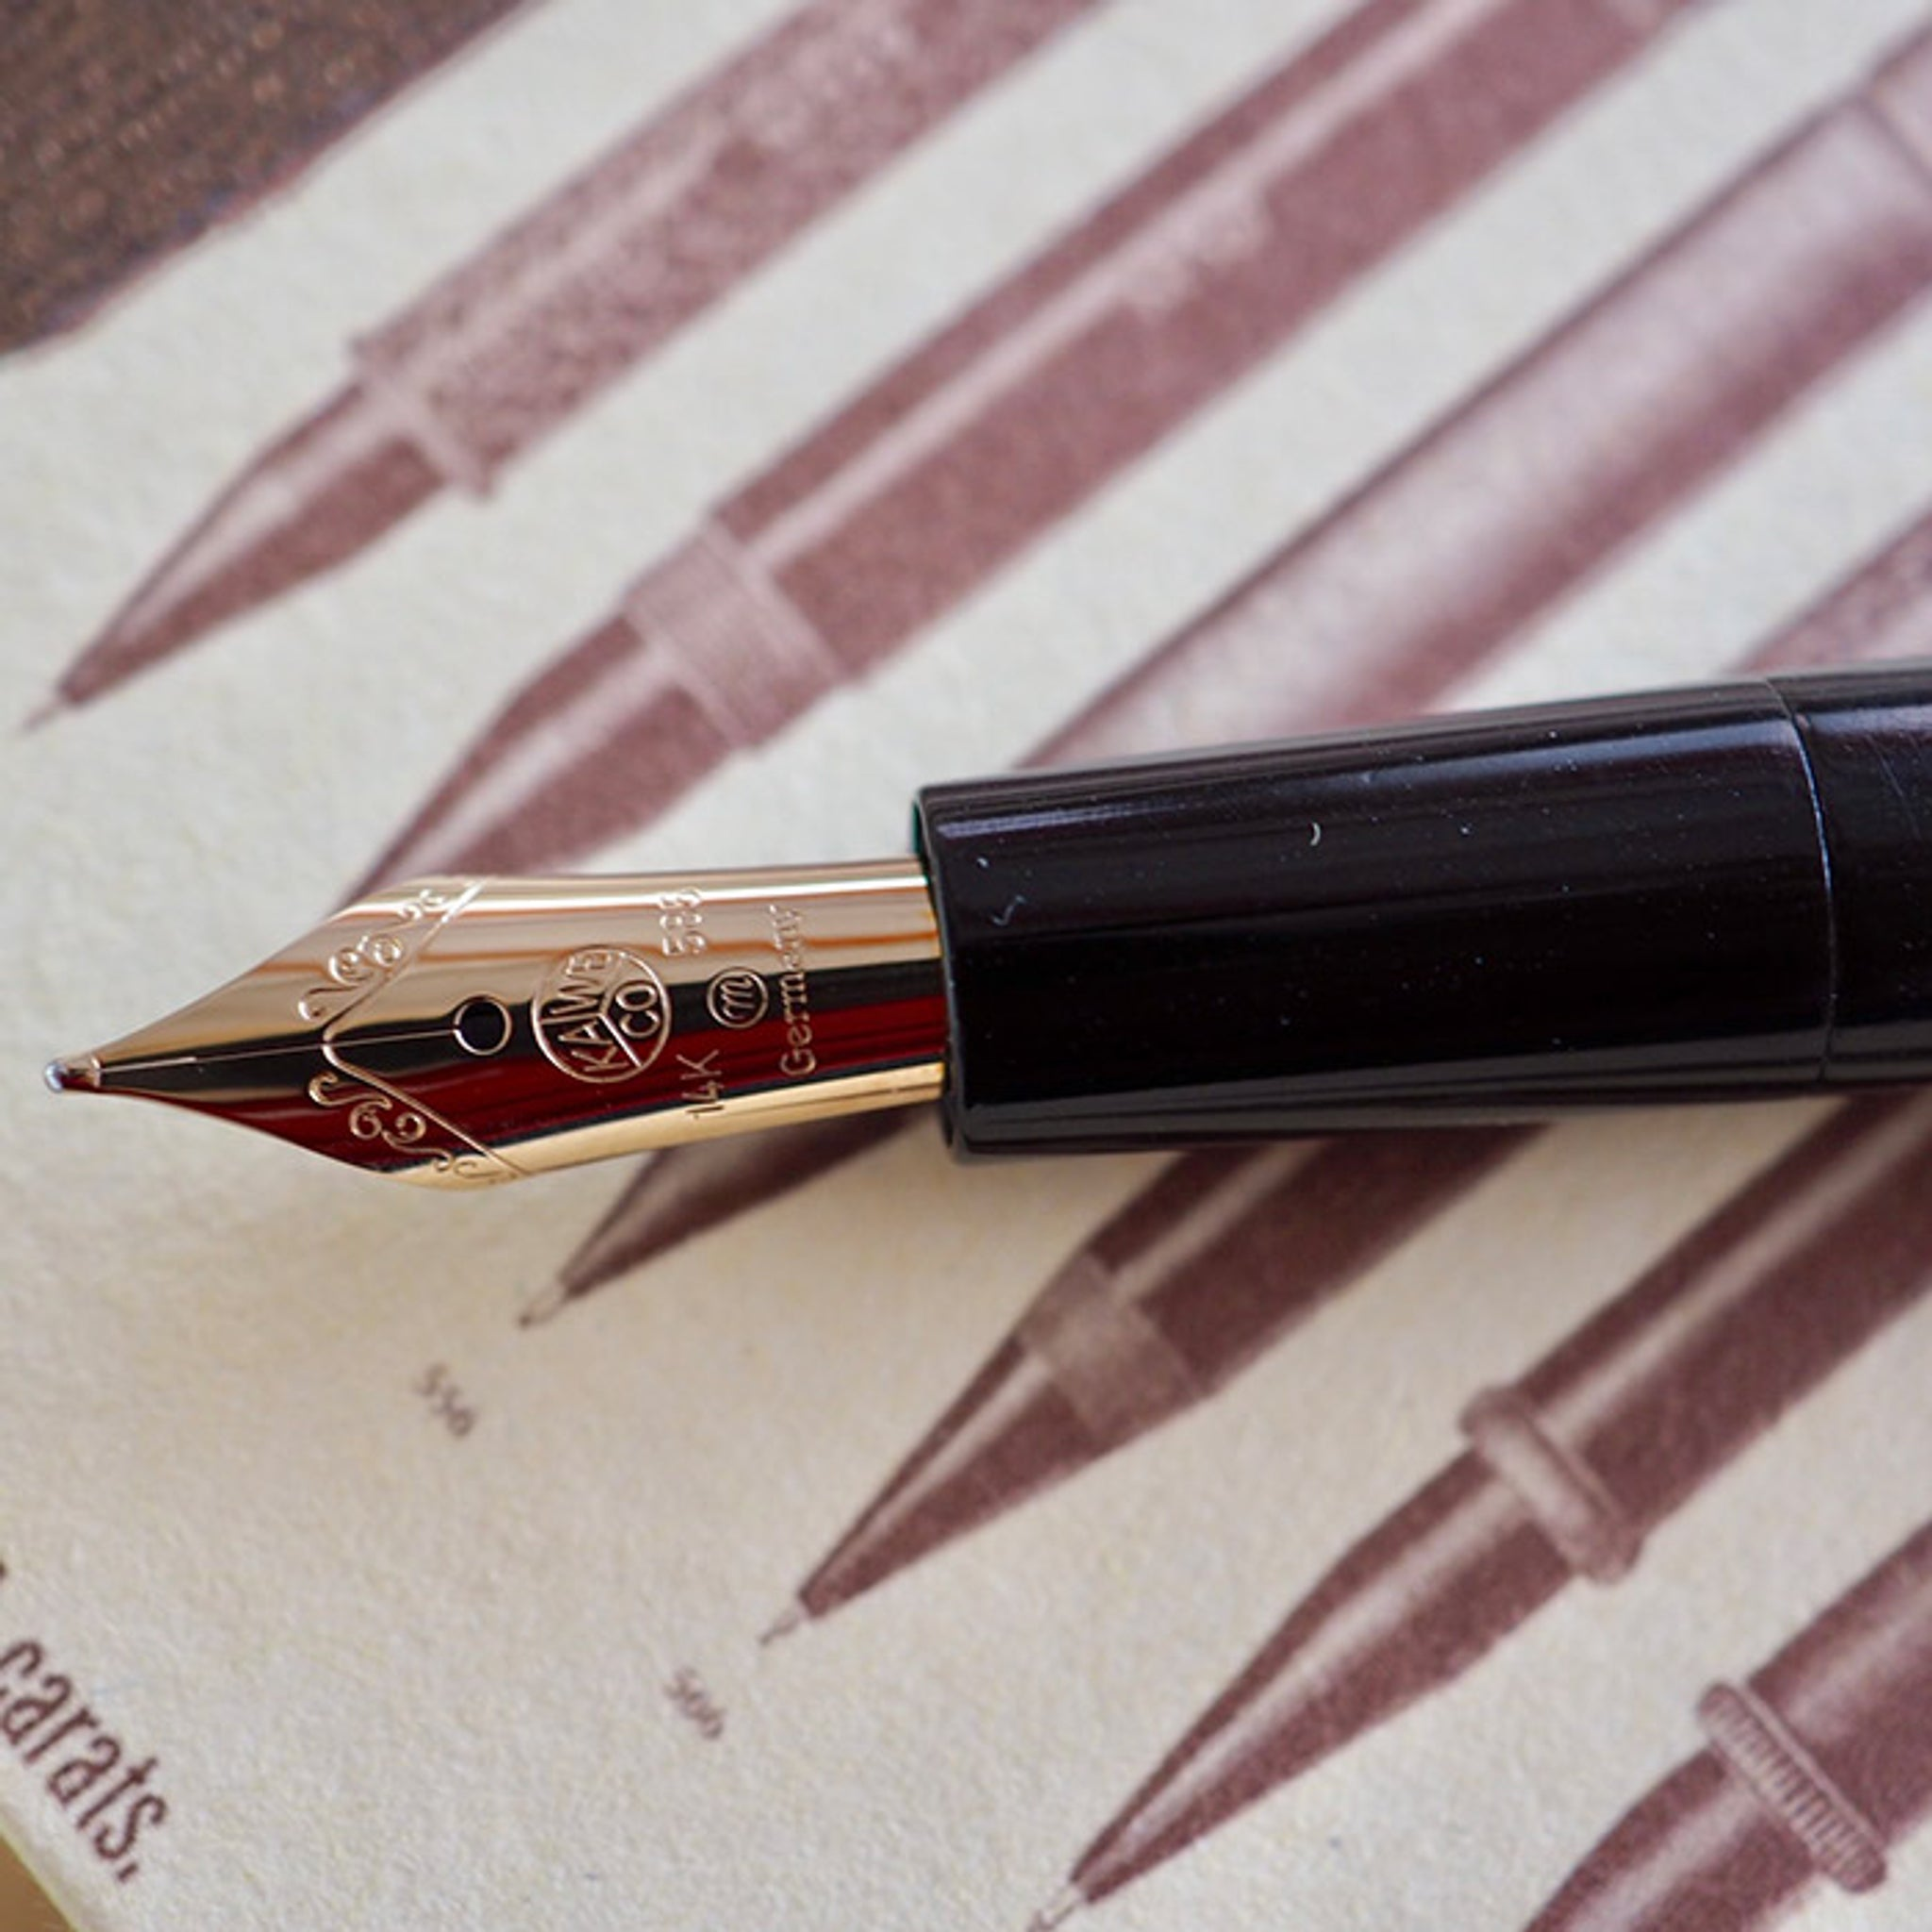 Kaweco Eyedropper 1910 Limited Edition Fountain Pen